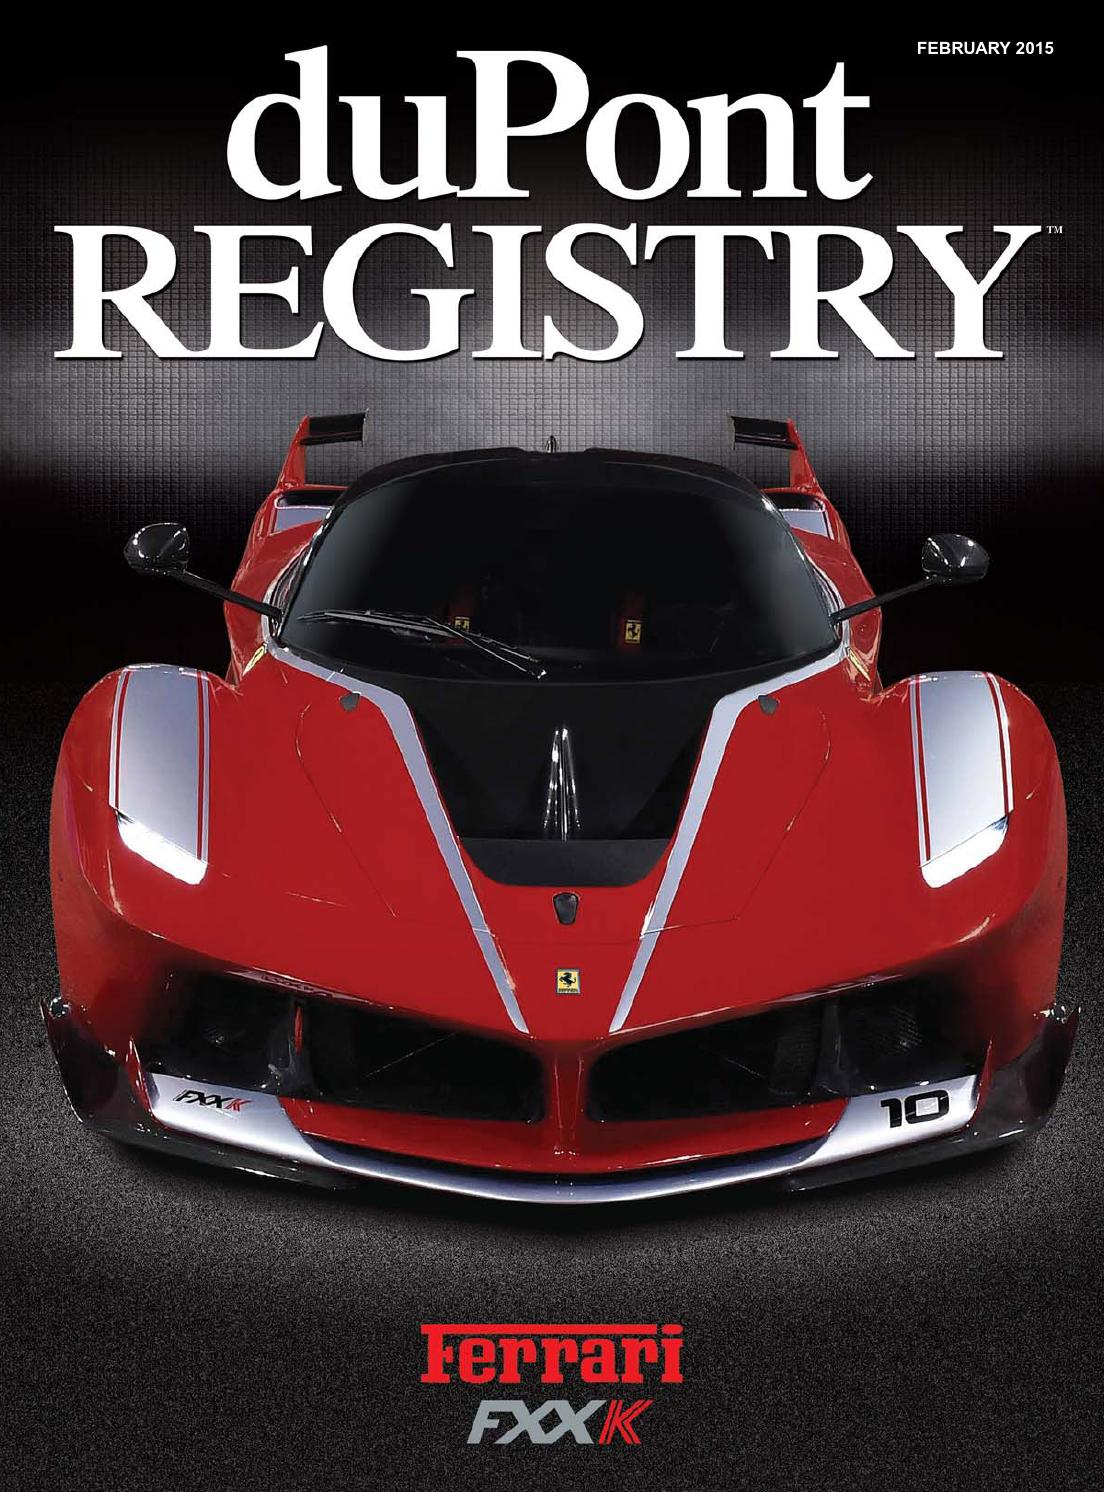 DuPontREGISTRY Autos February 2015 By DuPont REGISTRY   Issuu